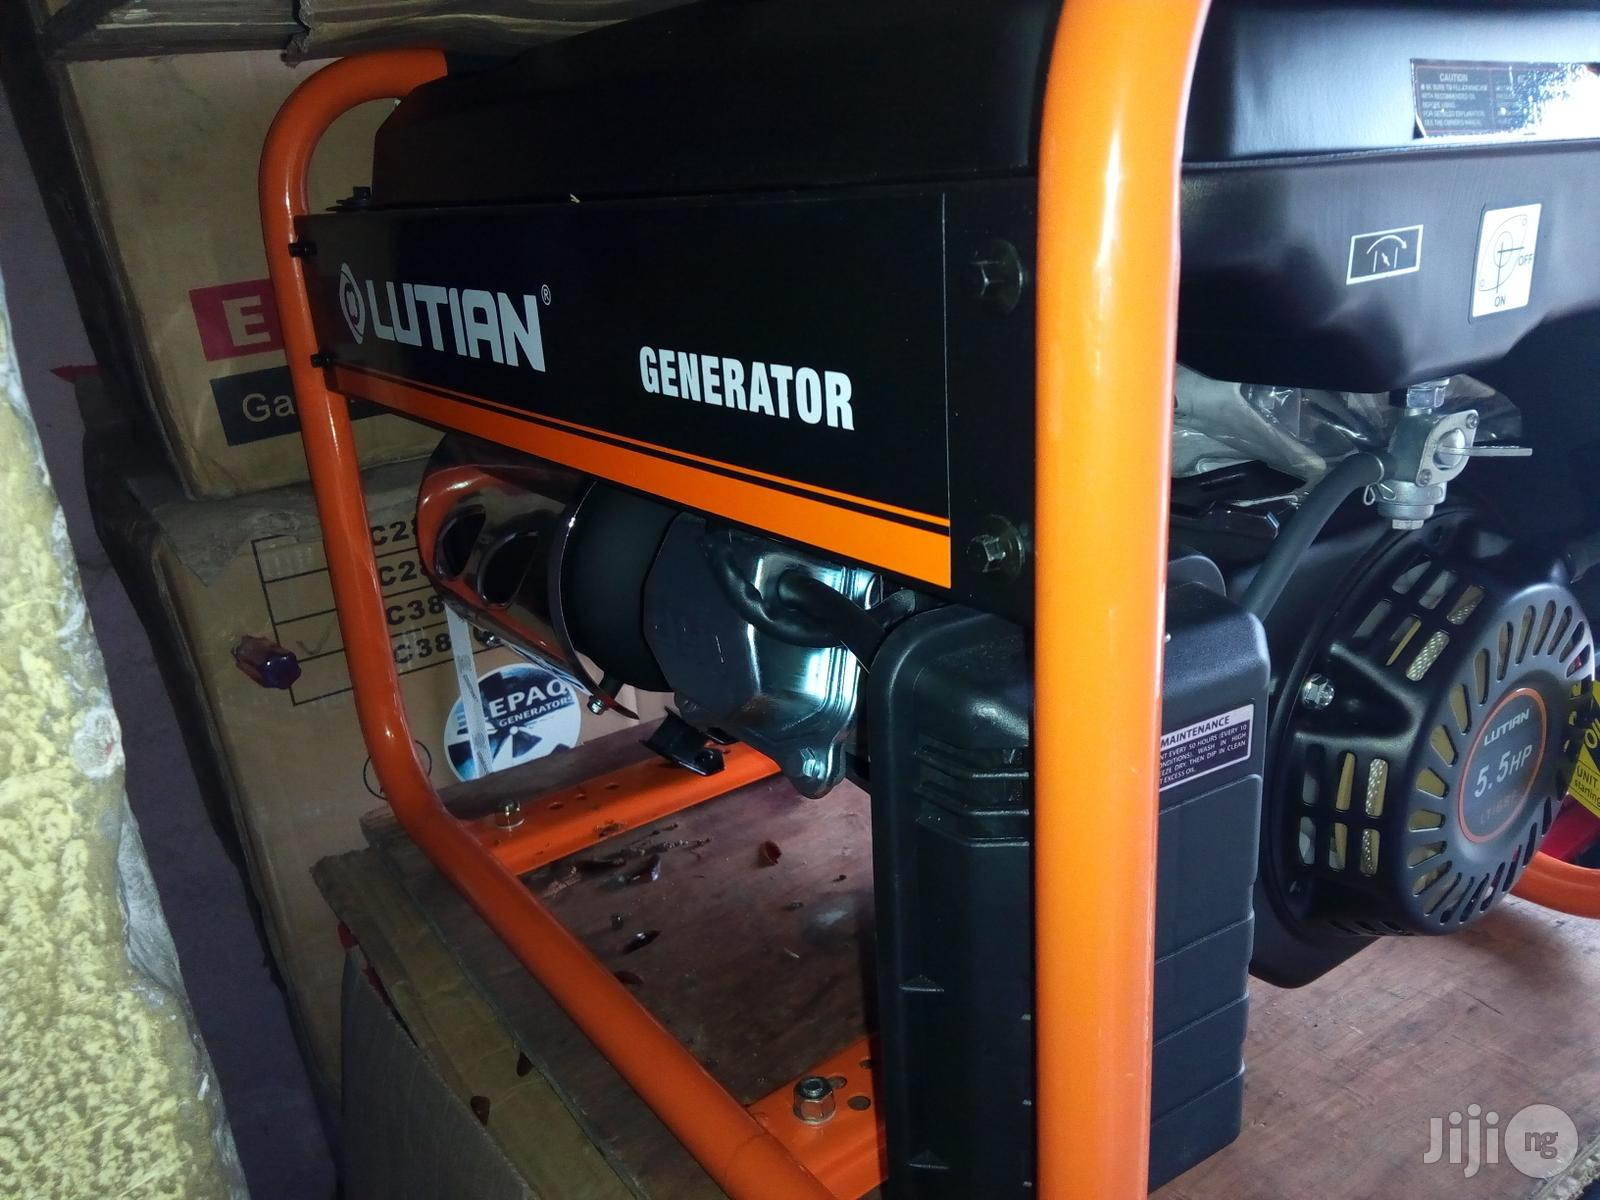 2.8kva Lutian Generator | Electrical Equipment for sale in Port-Harcourt, Rivers State, Nigeria